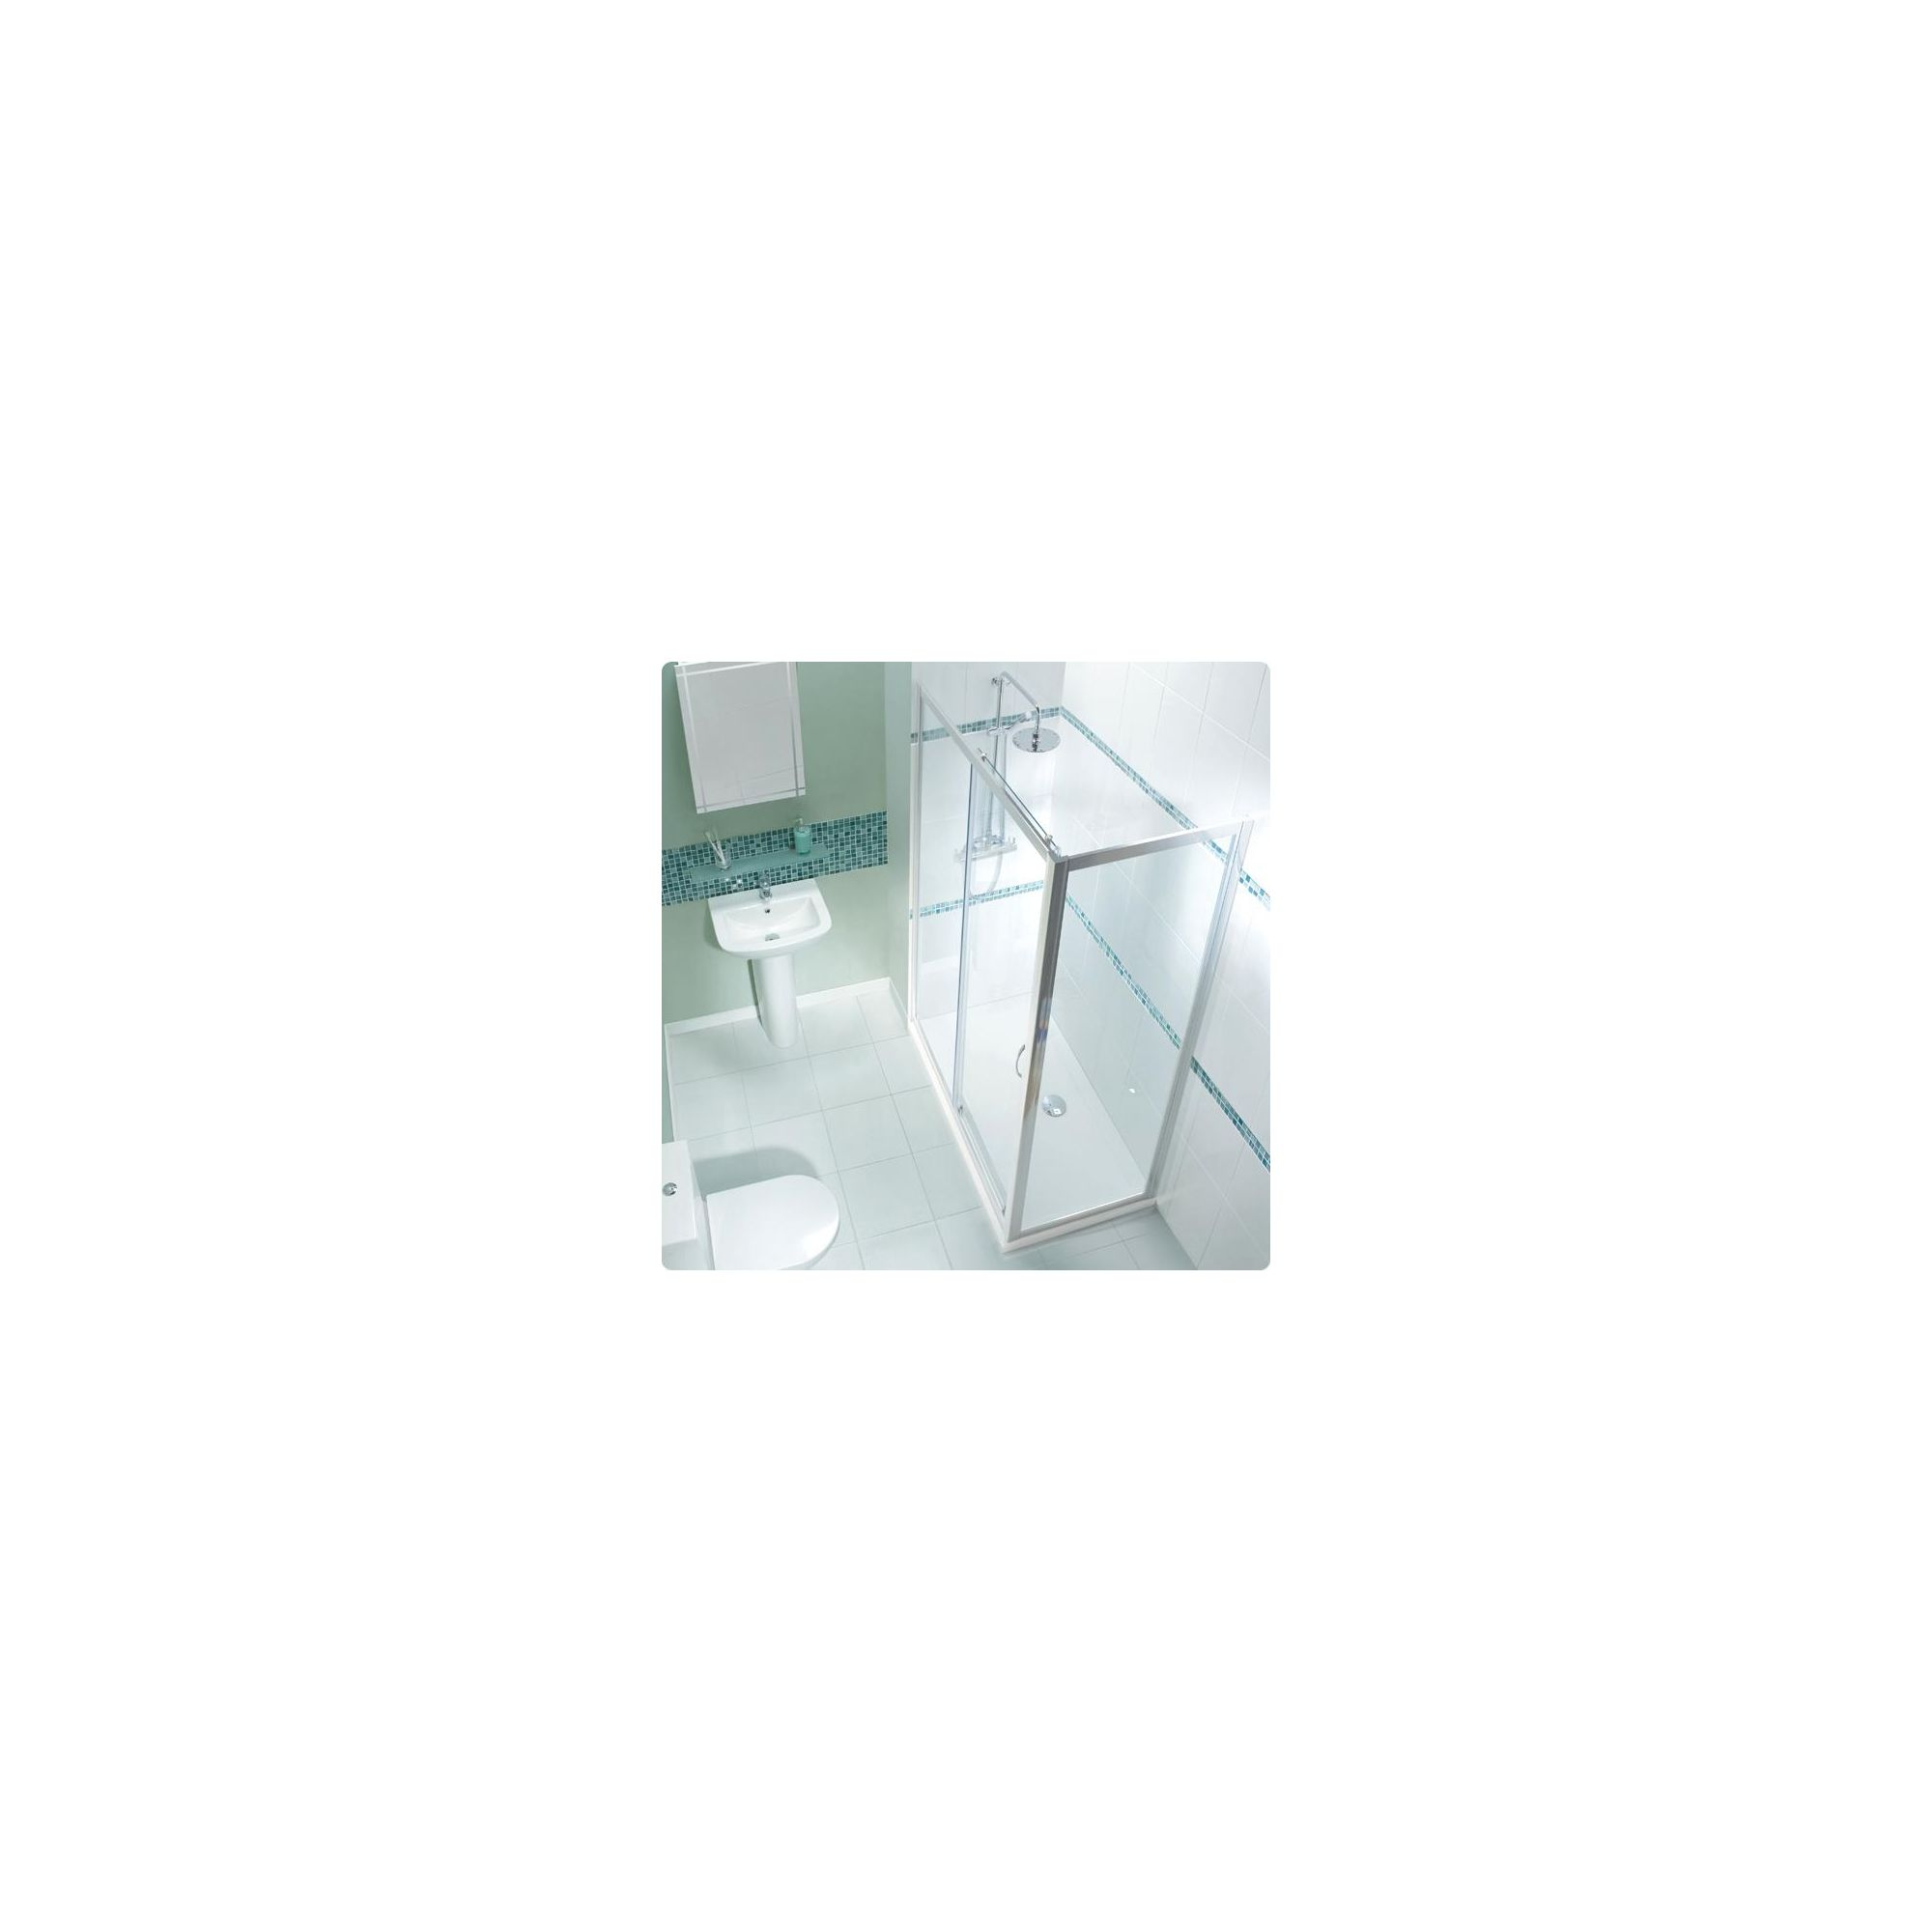 Balterley Framed Sliding Shower Enclosure, 1100mm x 760mm, Low Profile Tray, 6mm Glass at Tesco Direct